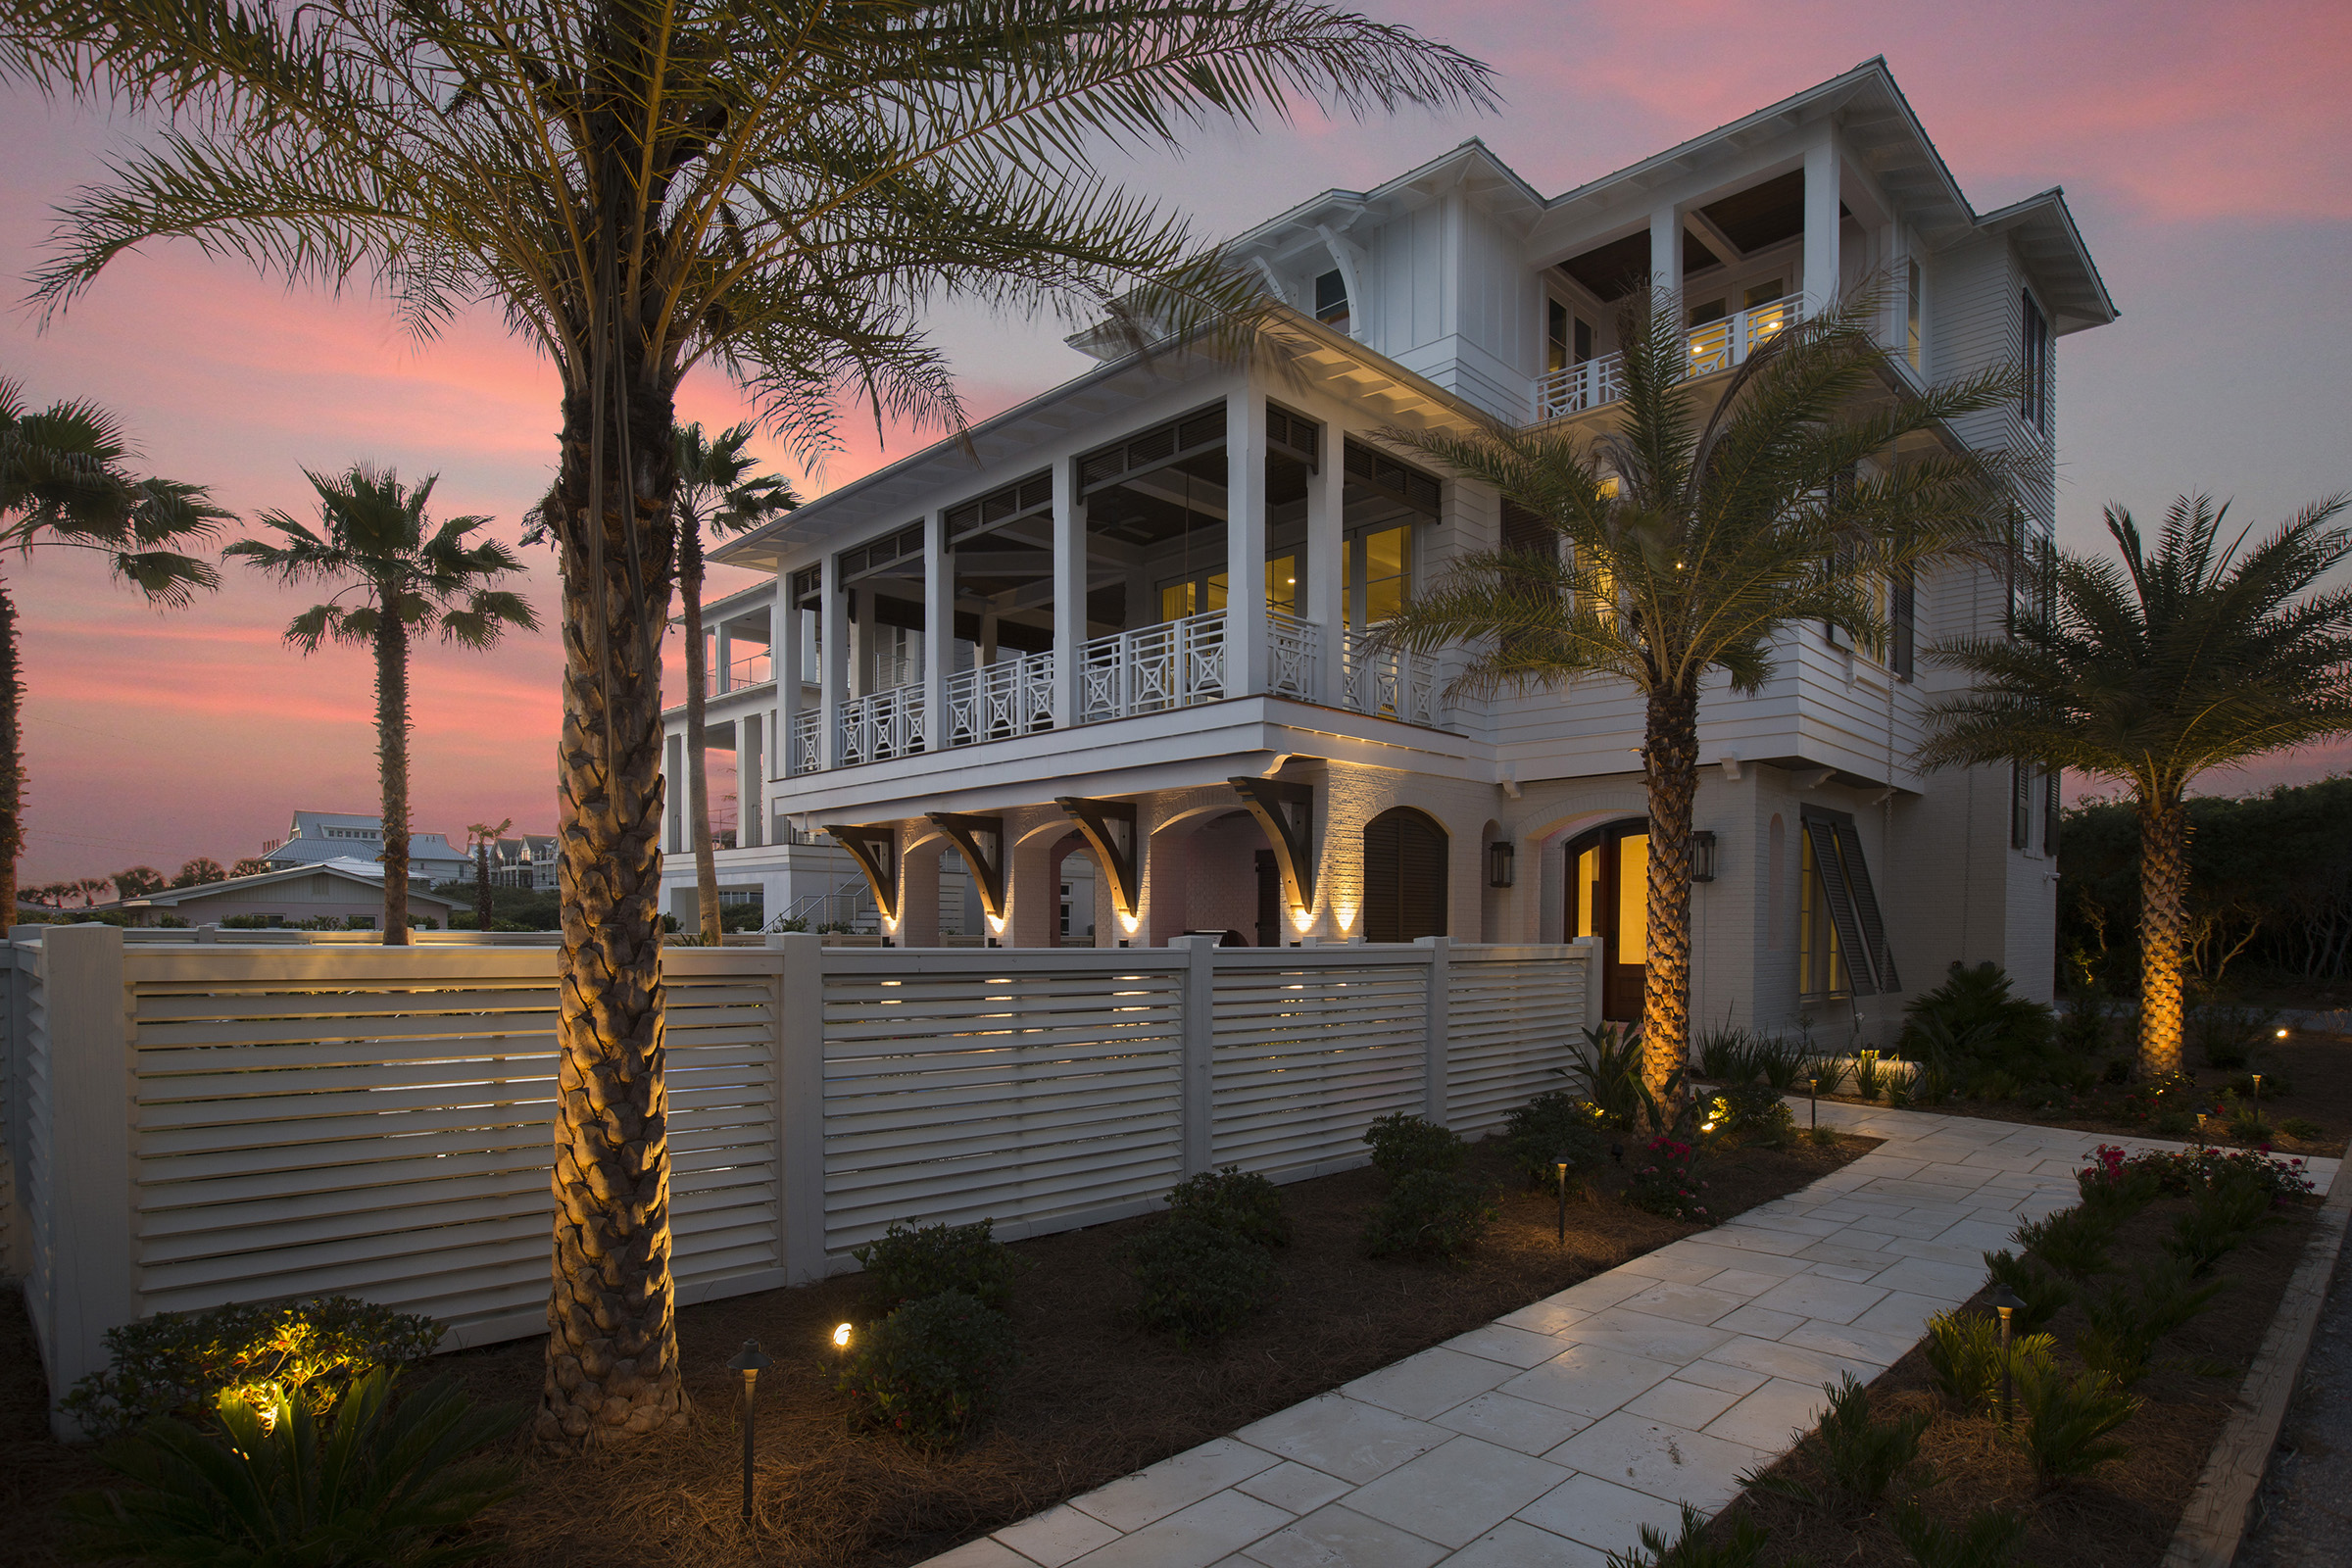 292-Pompano-inlet-beach-florida-glenn-jacks-residence-residential-architecture-jeffrey-prescott-prescott-architects-destin-florida-design-1.jpg